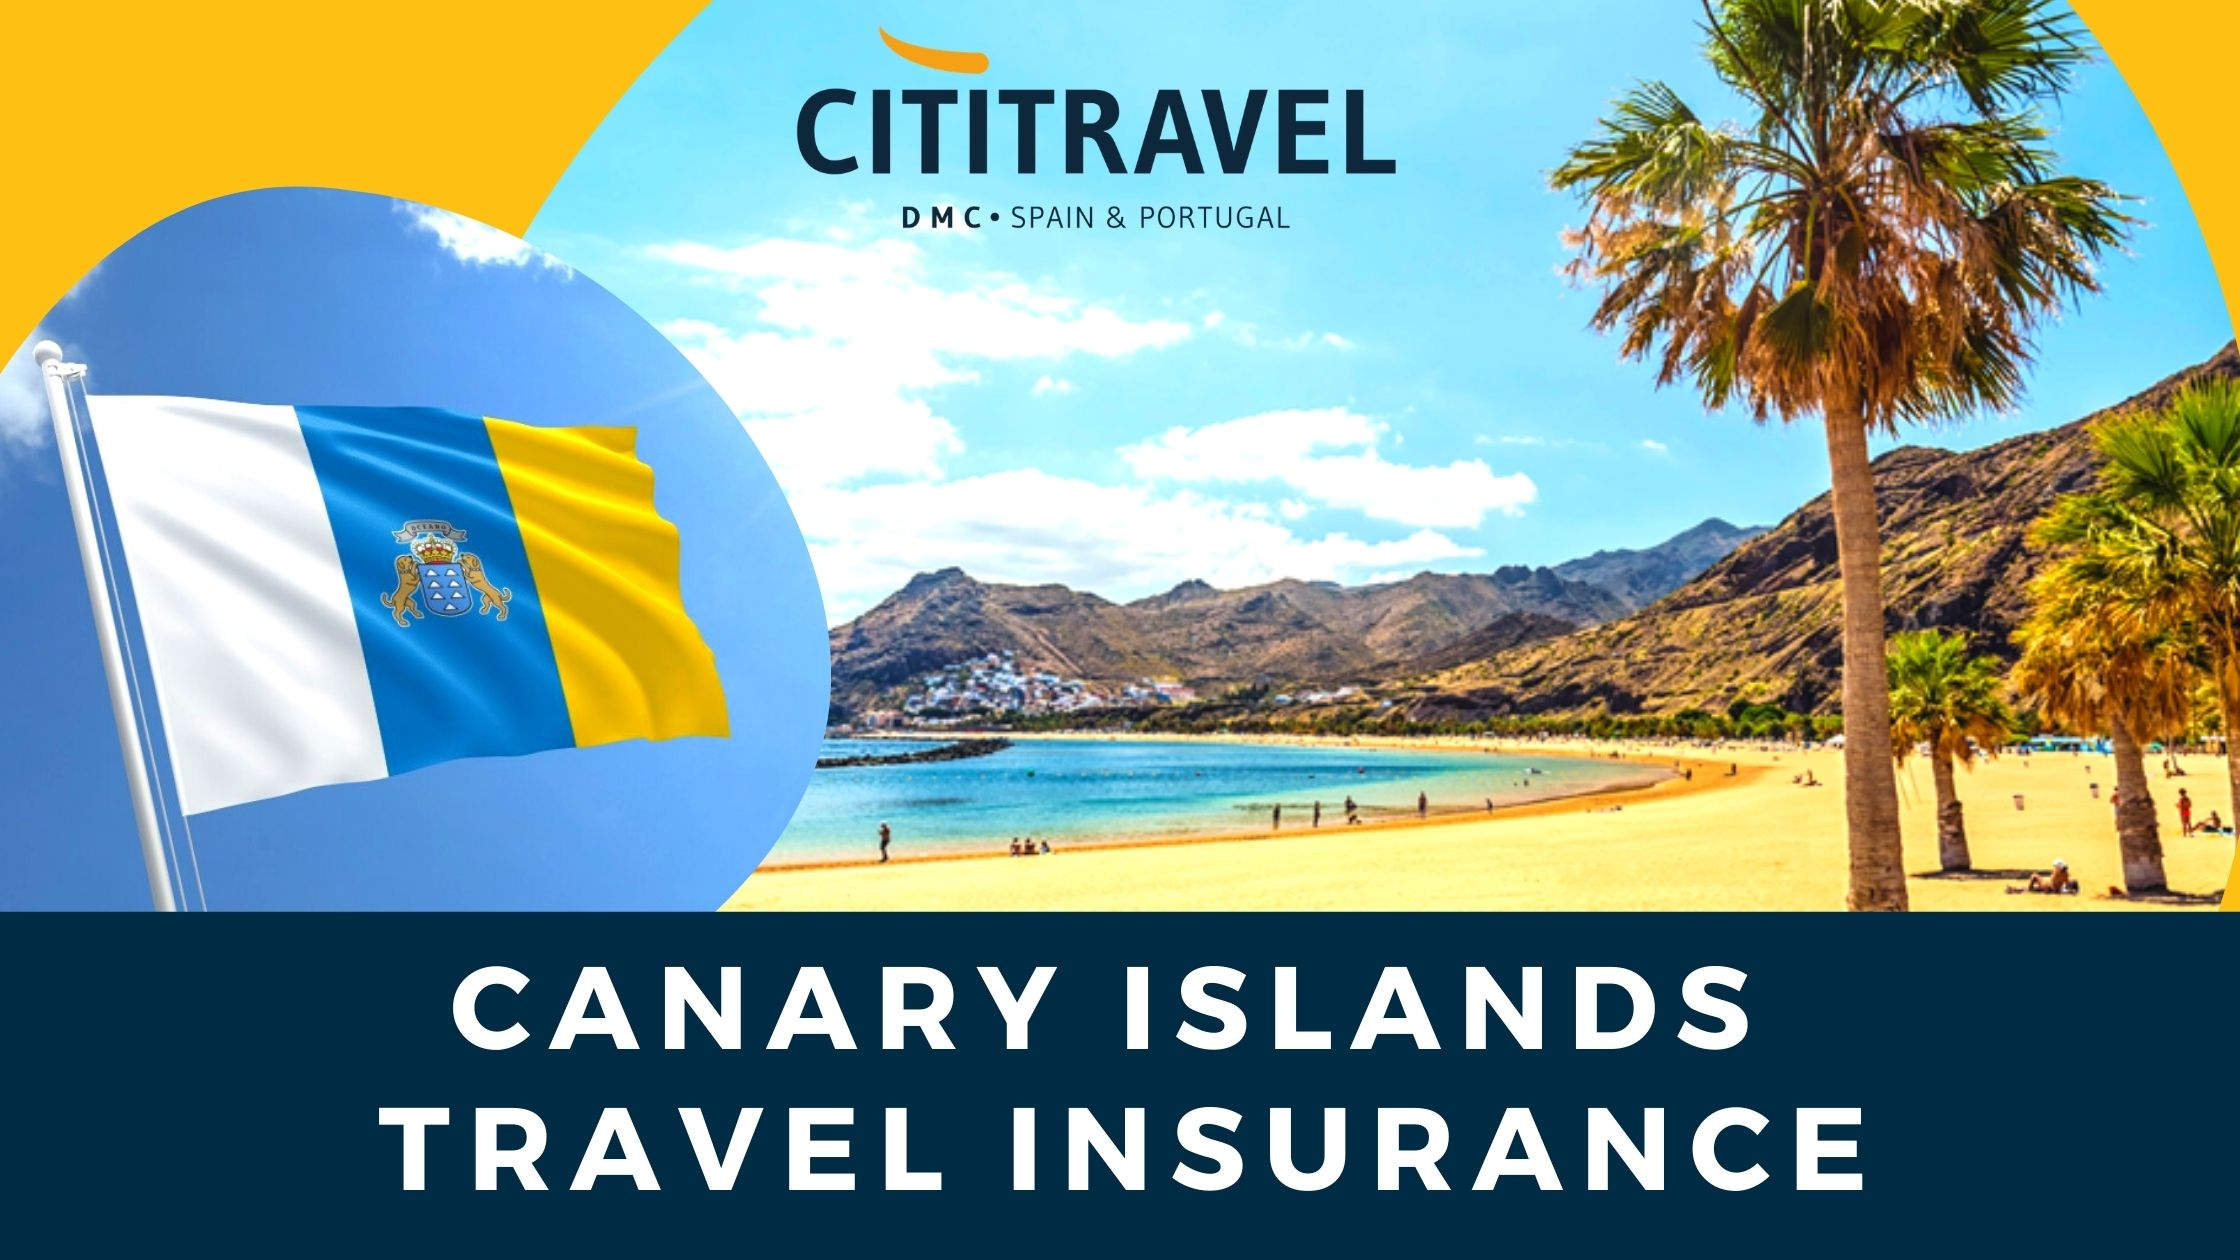 CANARY ISLANDS SIGNS A TRAVEL INSURANCE AGREEMENT THAT COVERS QUARANTINE OF TOURISTS ON THE ISLANDS